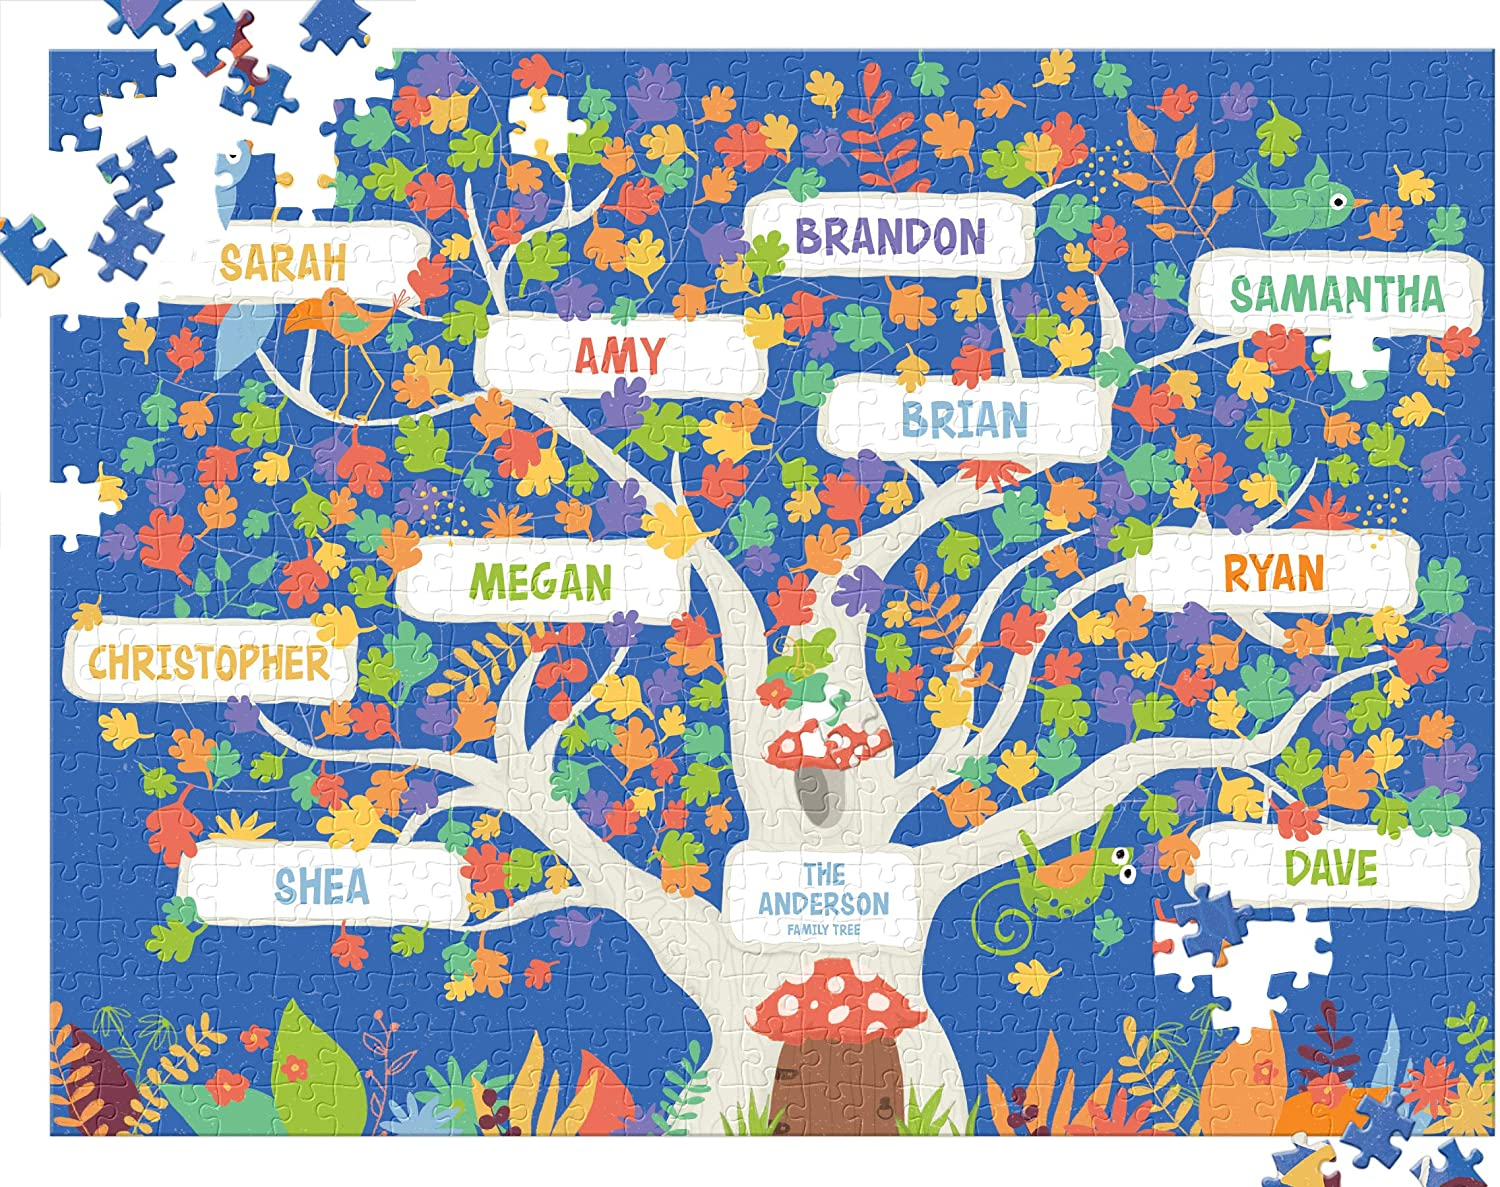 Custom Puzzle for Adults 500 Piece, Family Tree Ancestry Gift, Boredom Buster Activity